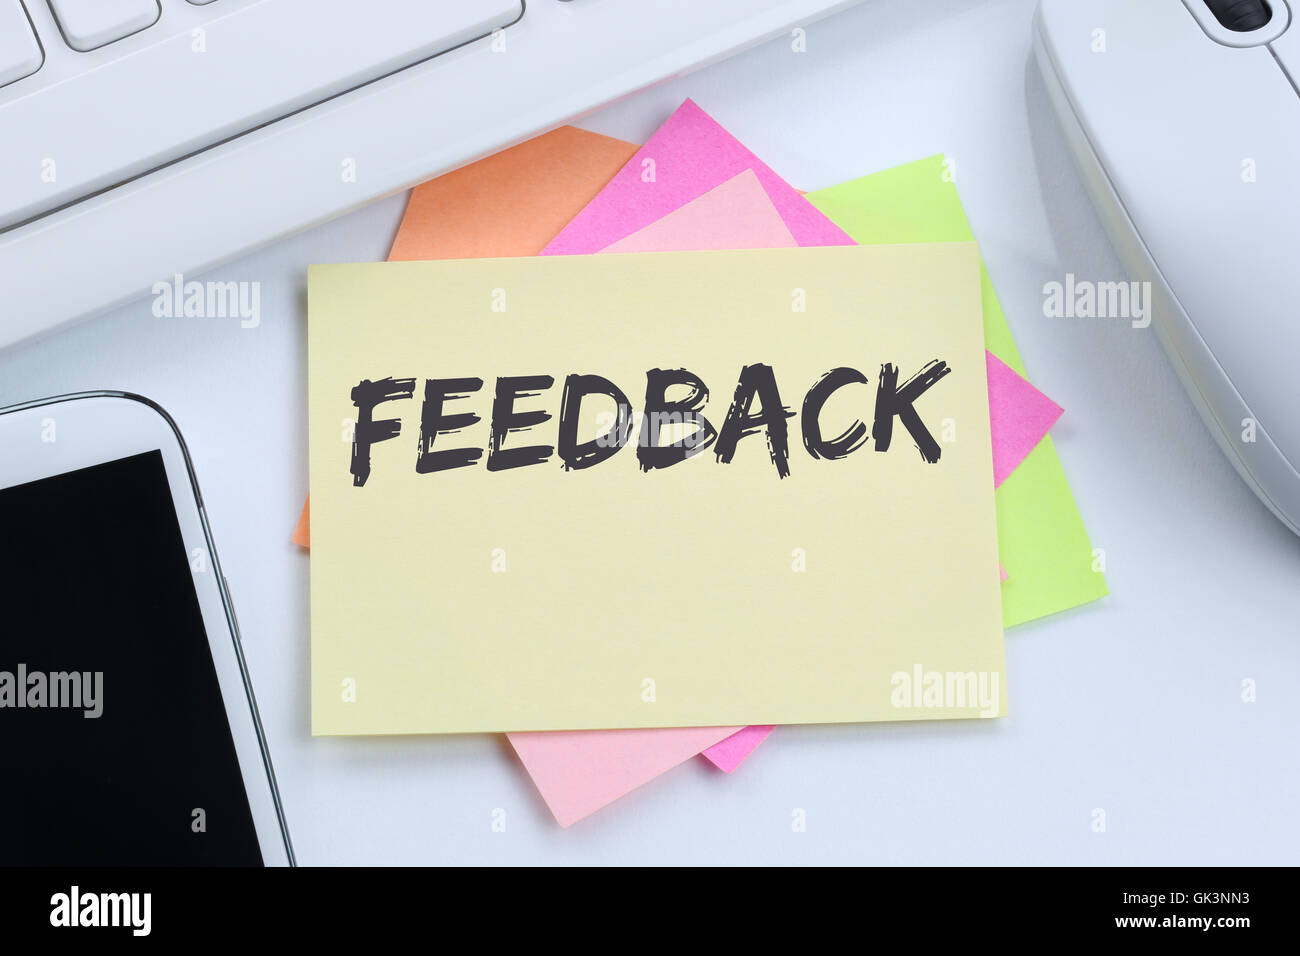 Feedback contact customer service opinion survey business concept review desk computer keyboard - Stock Image